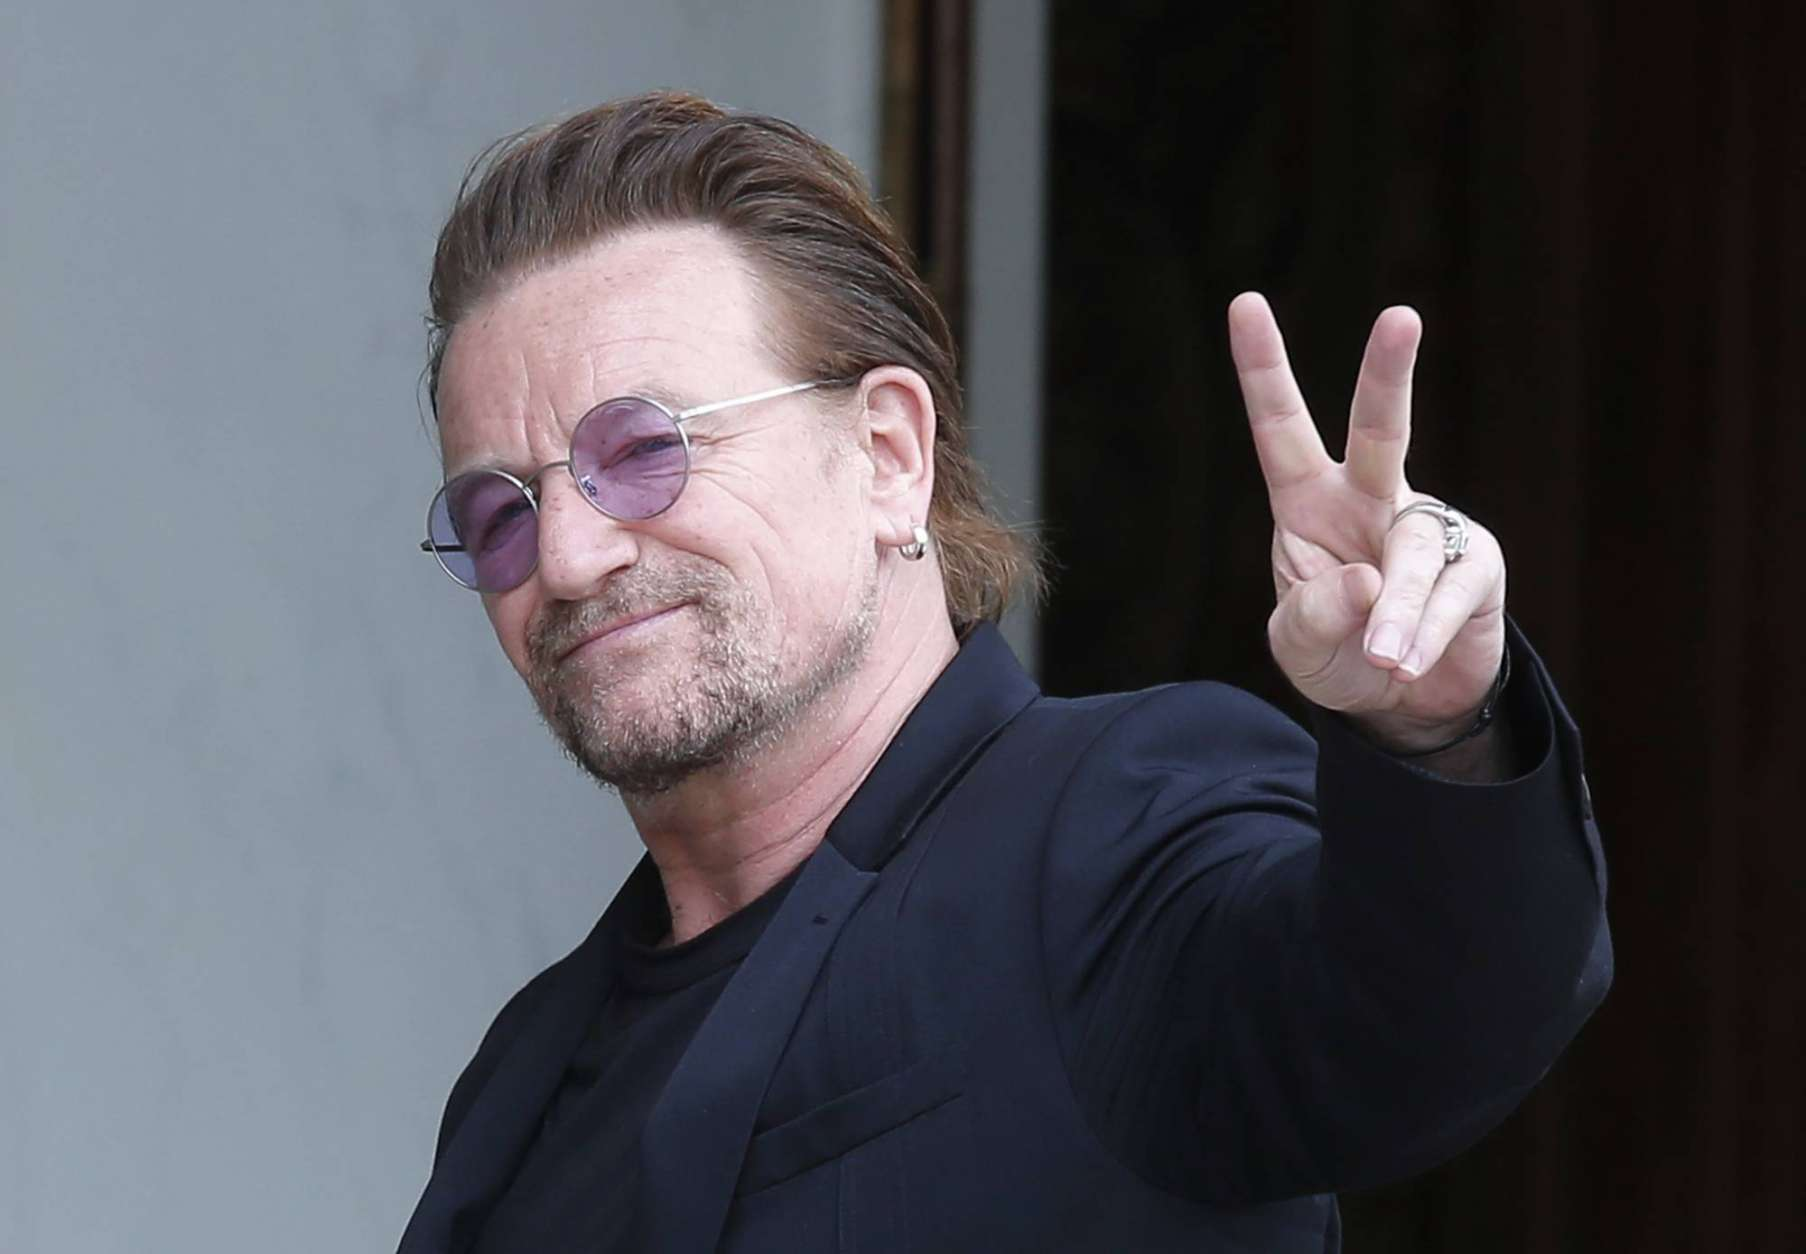 FILE - In this July 24, 2017, file photo, U2 singer Bono makes a peace sign as he arrives for a meeting at the Elysee Palace, in Paris, France. Bono will break a longstanding promise among the band not to play golf in order to raise money for his (RED) charity in the fight against HIV/AIDS. The chance to play mini-golf with U2 is just one of the celebrity experiences that are being raffled off as part of the (RED) Shopathon campaign for World AIDS Day on Dec. 1 at Omaze.com/RED. (AP Photo/Michel Euler, File)